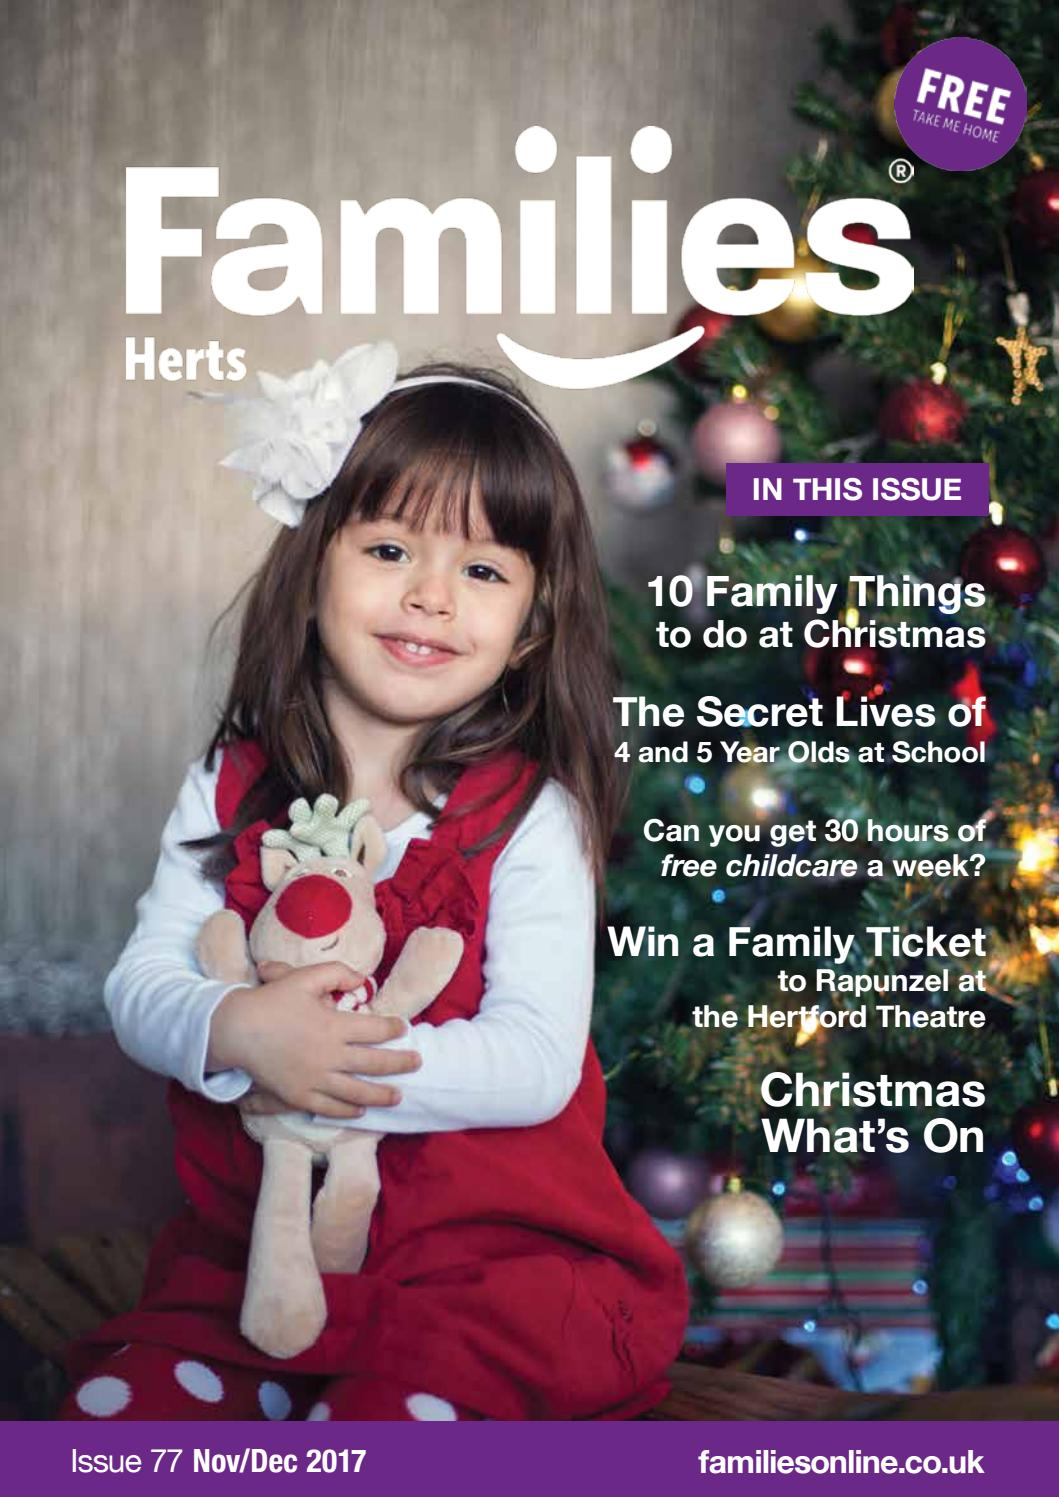 Families Herts November December 2017 Issue 77 By Families Magazine Issuu